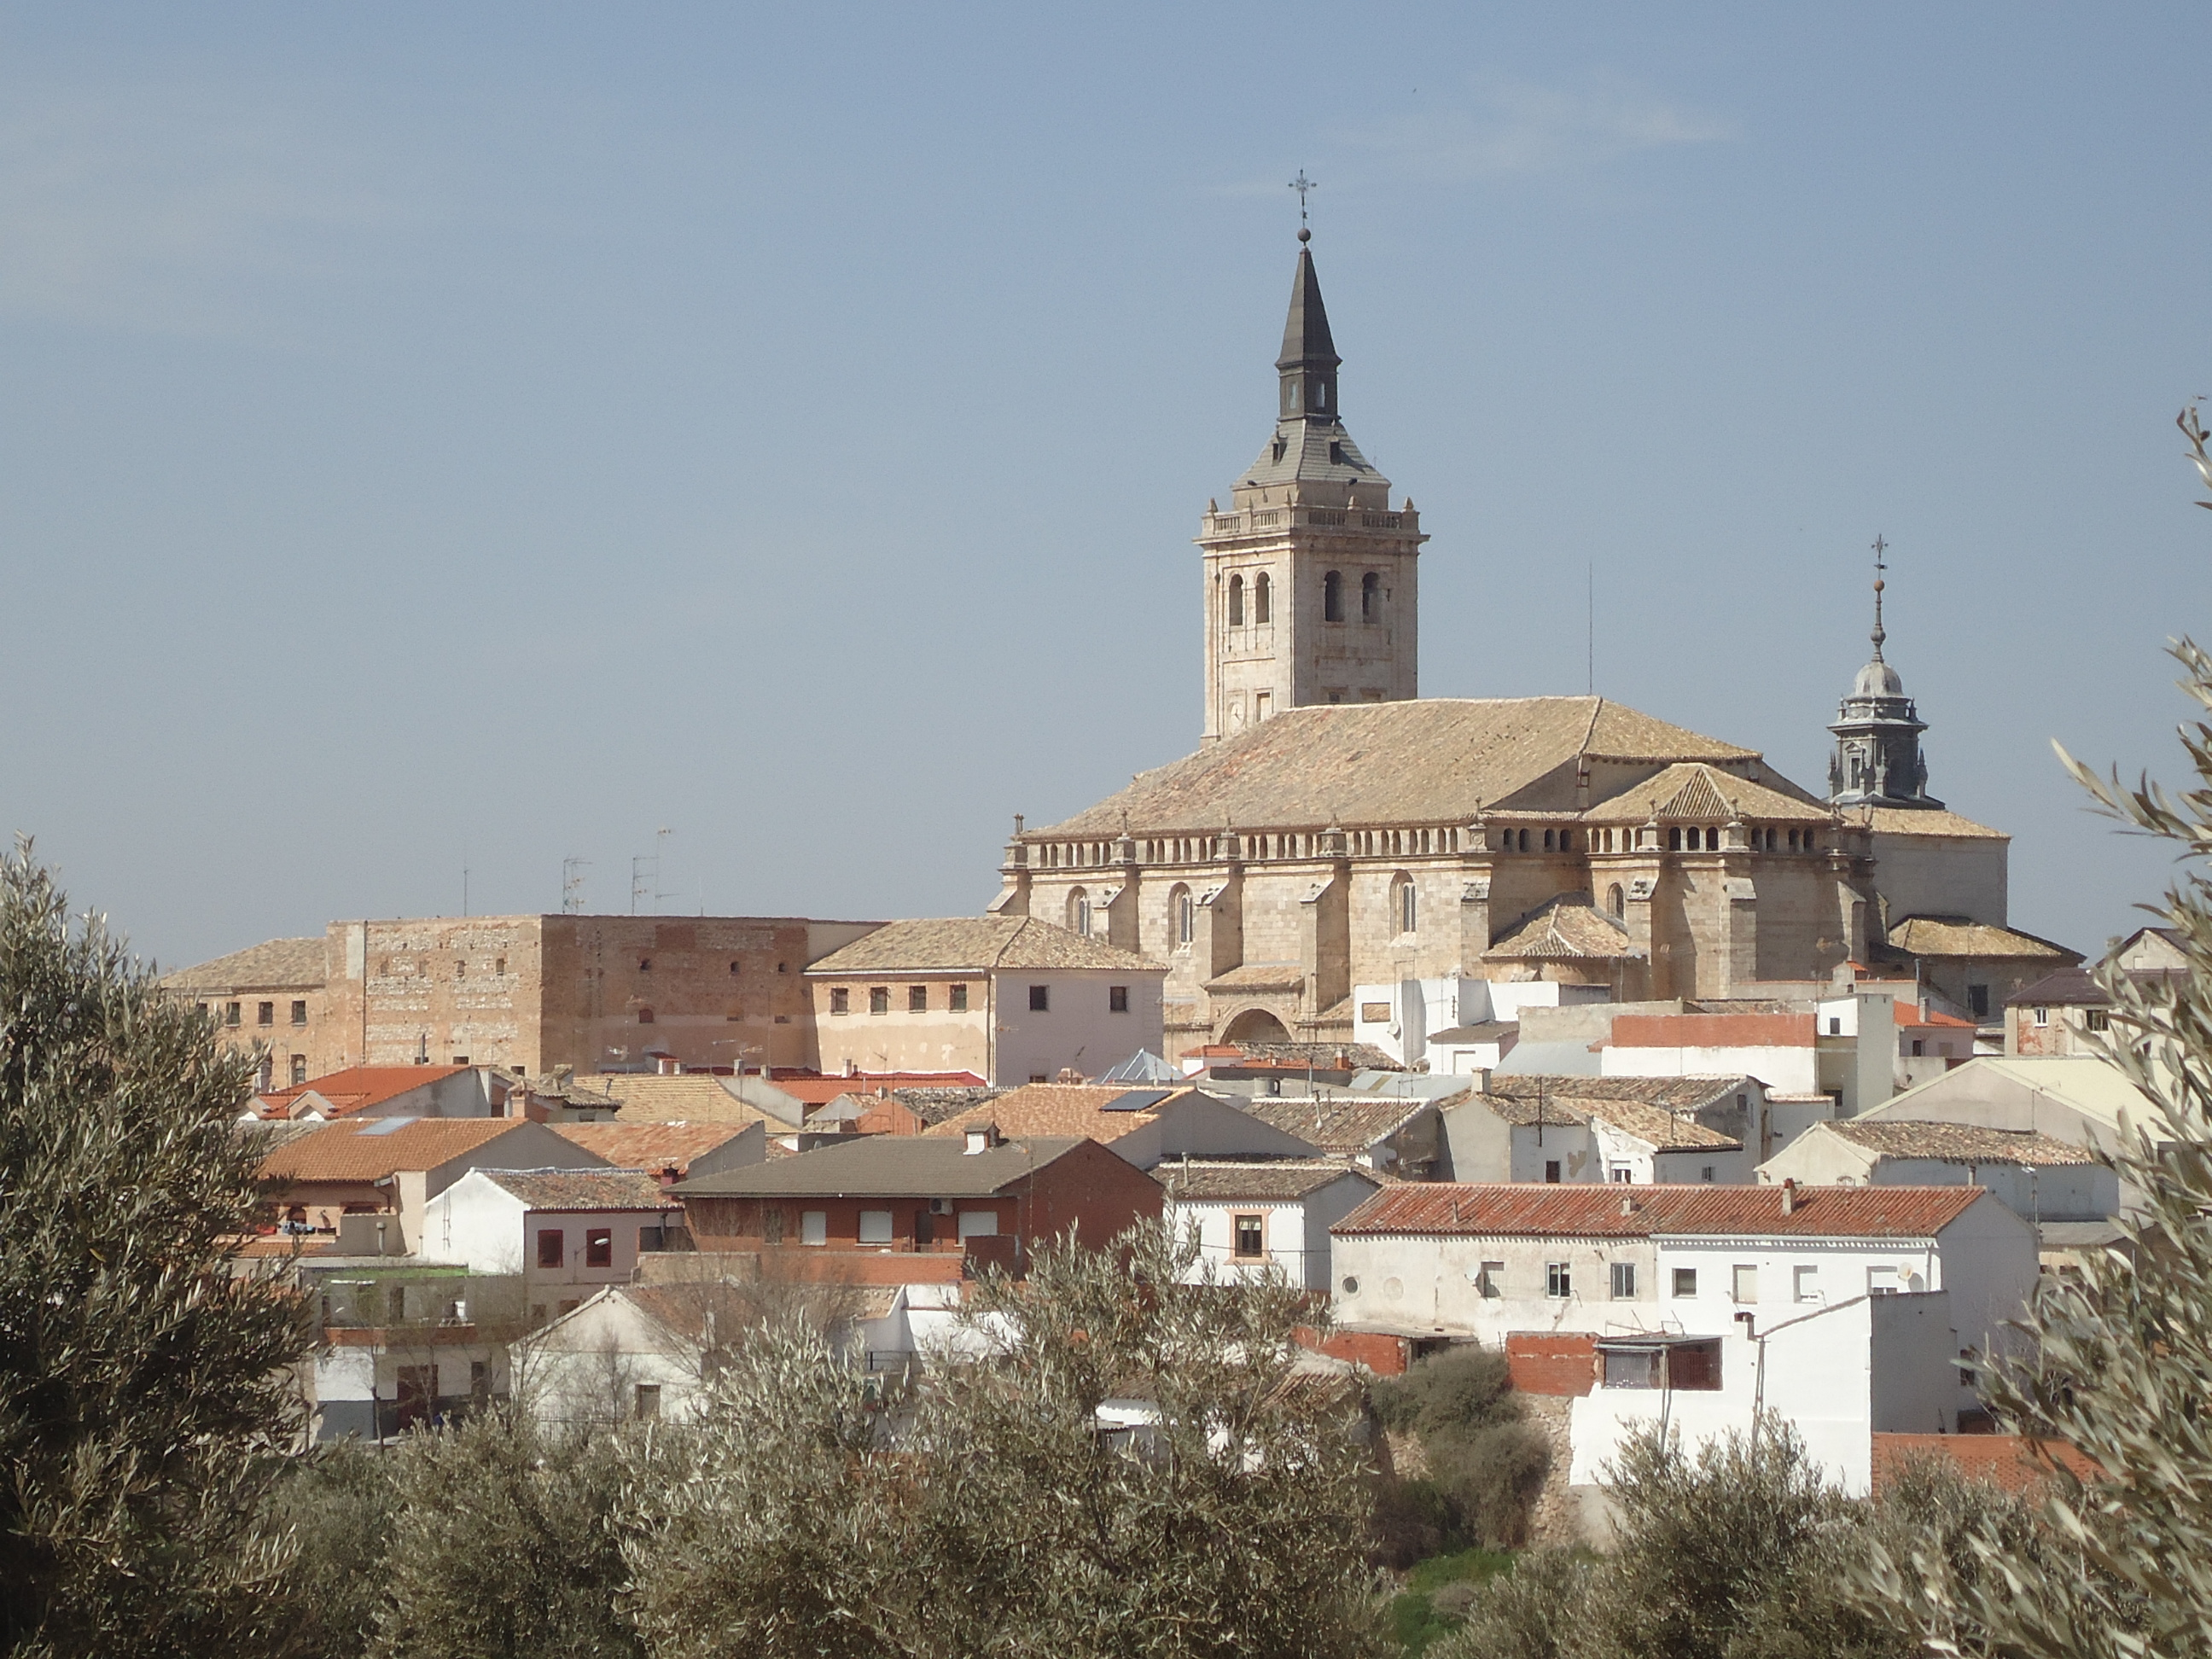 File:Yepes - Panorámica.JPG - Wikimedia Commons